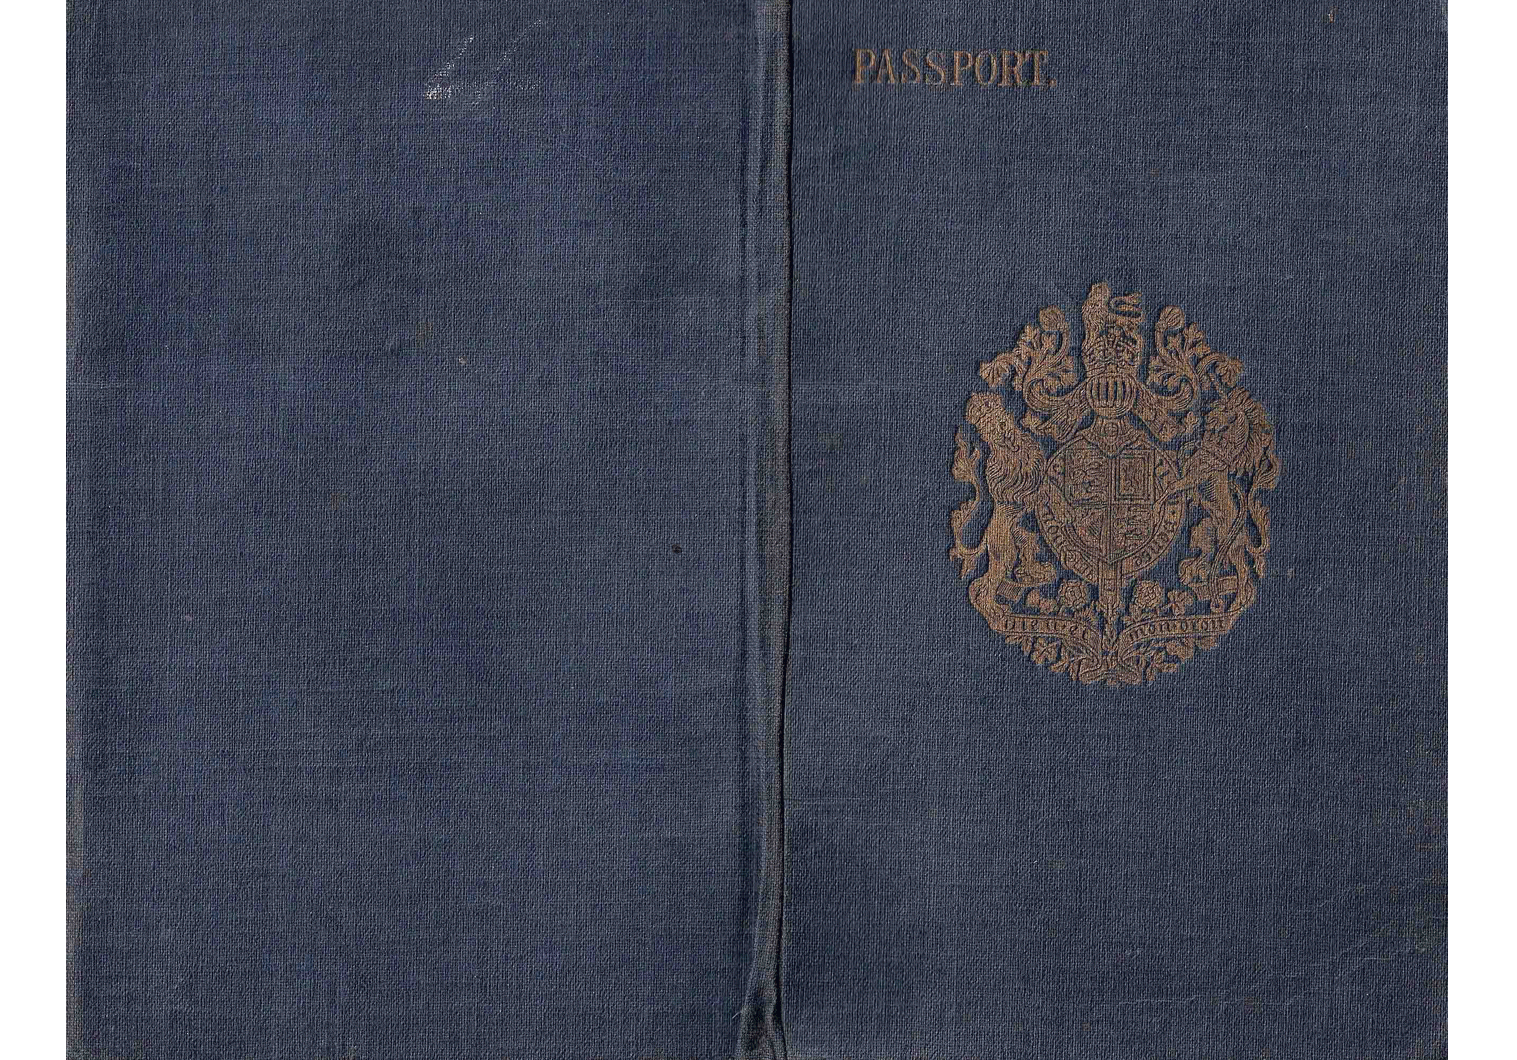 WW1 British passport used for China